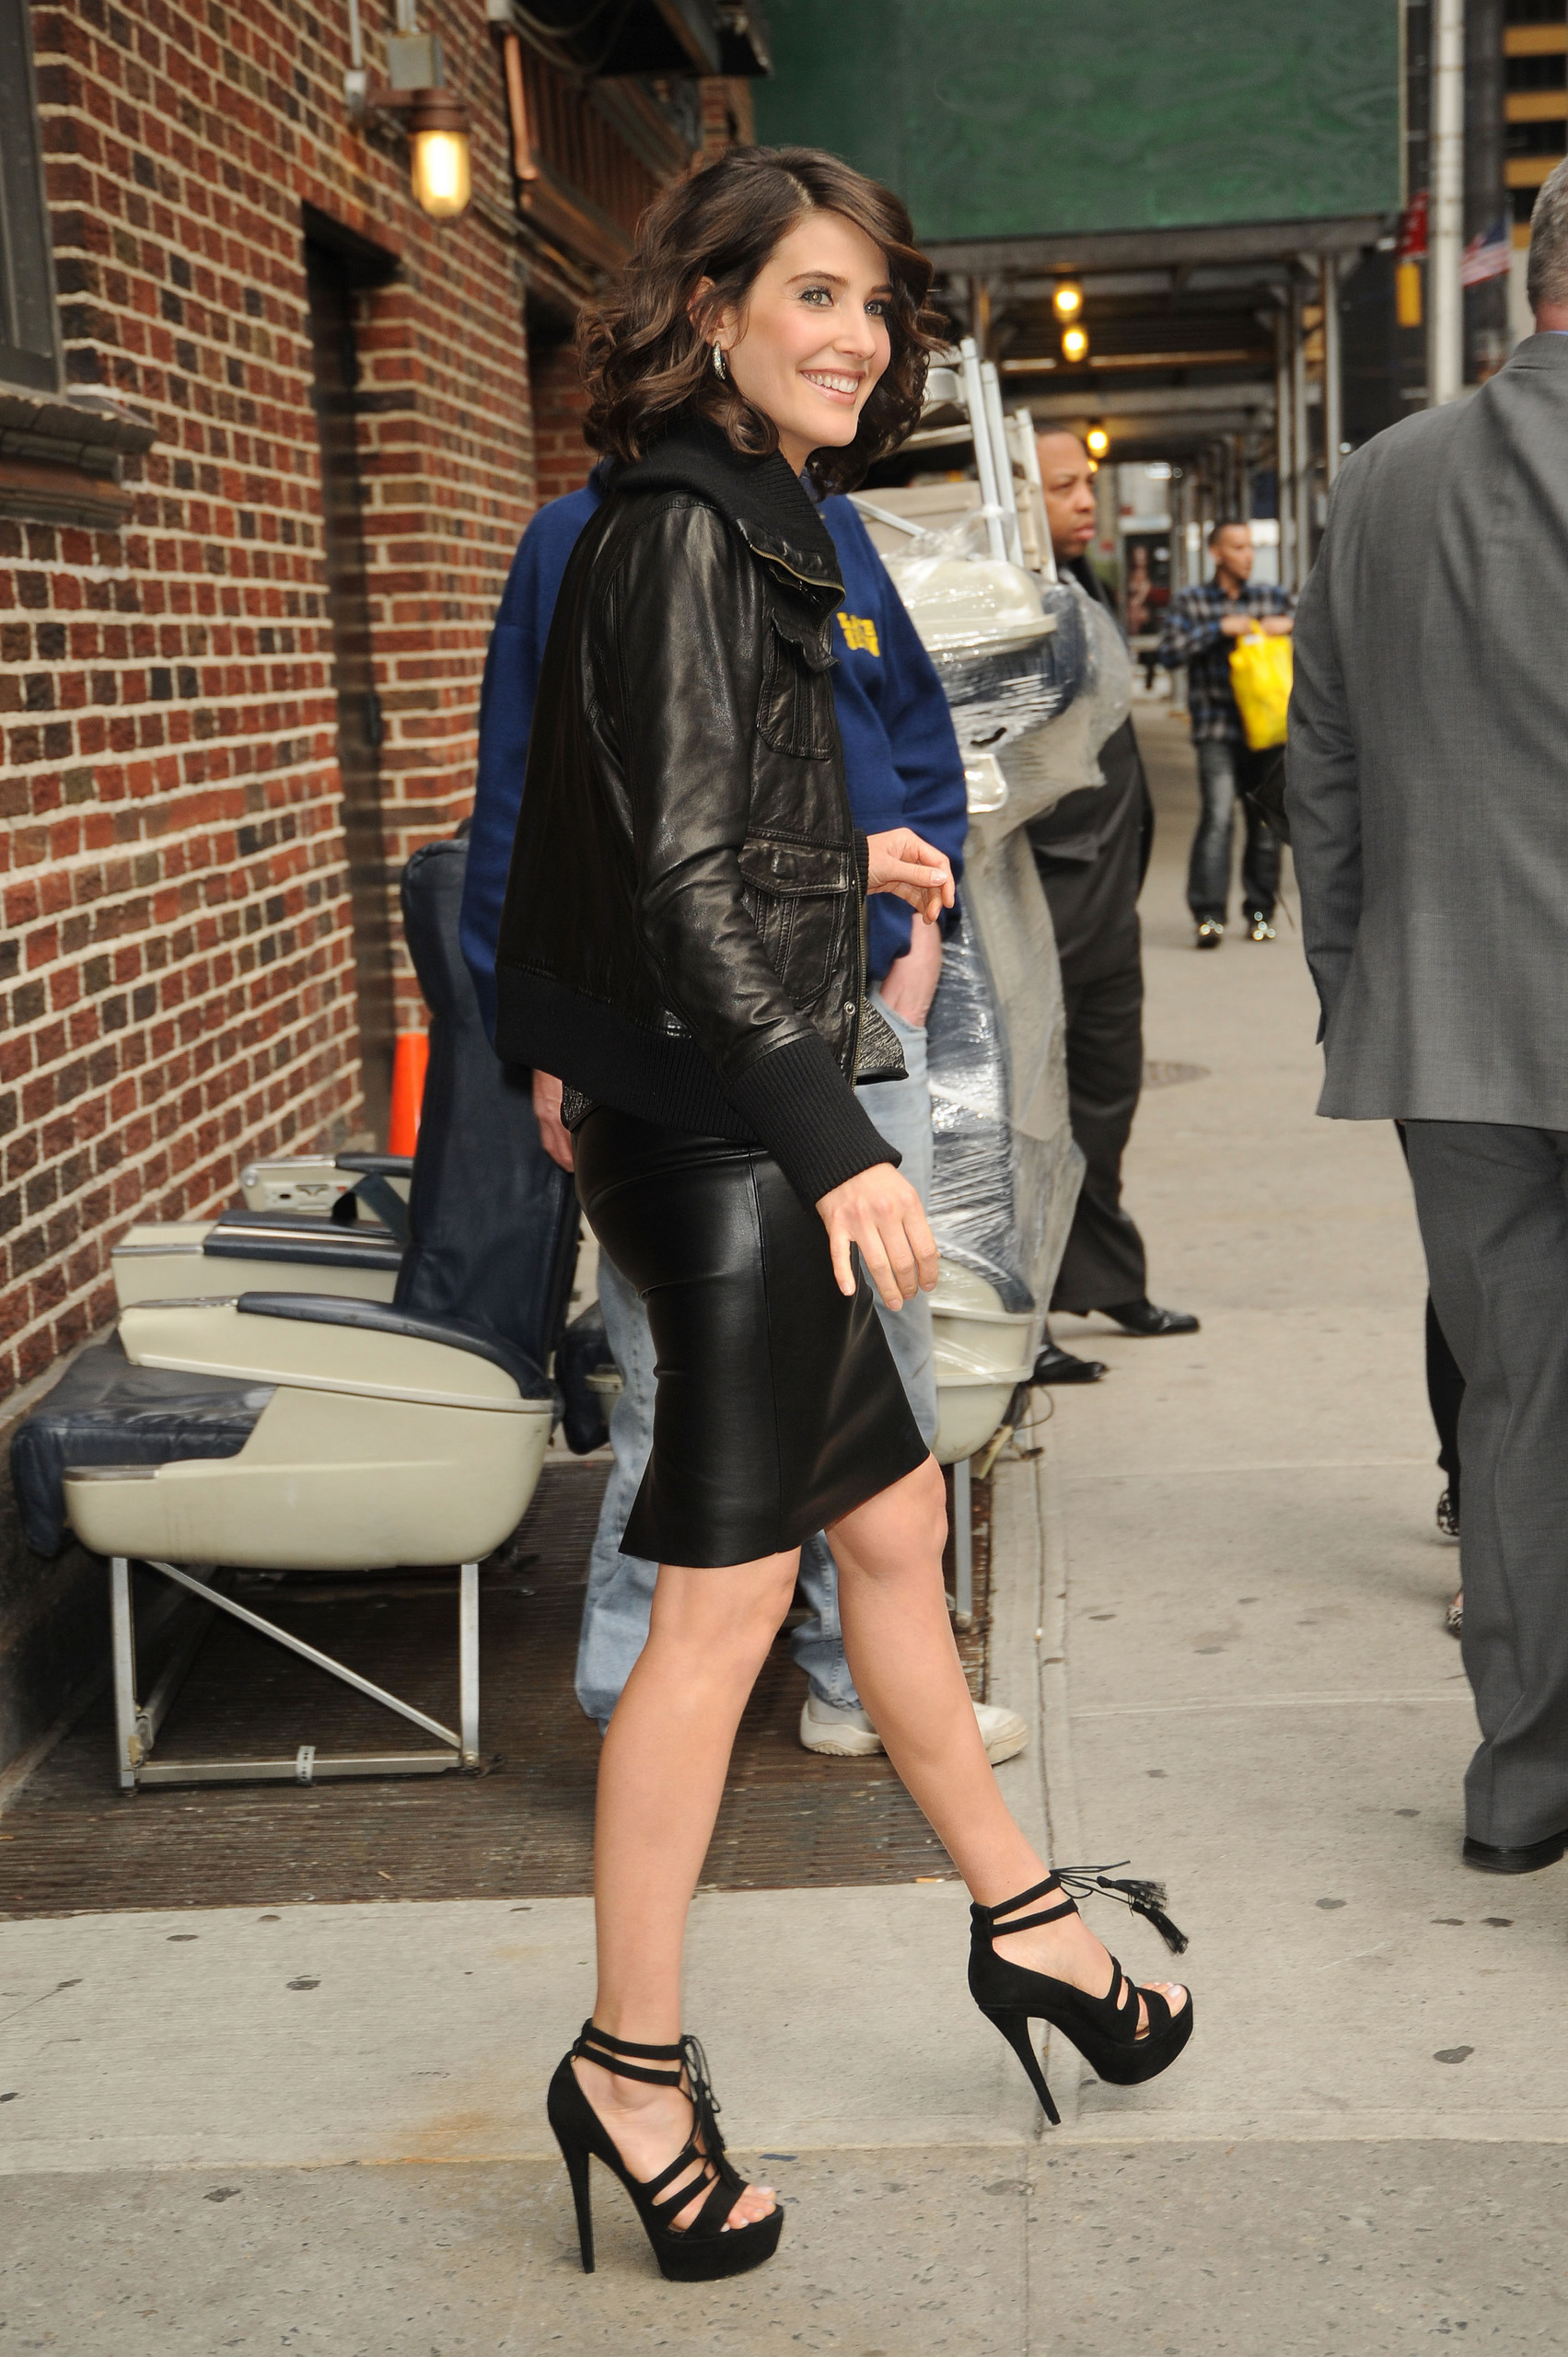 Cobie Smulders on letterman